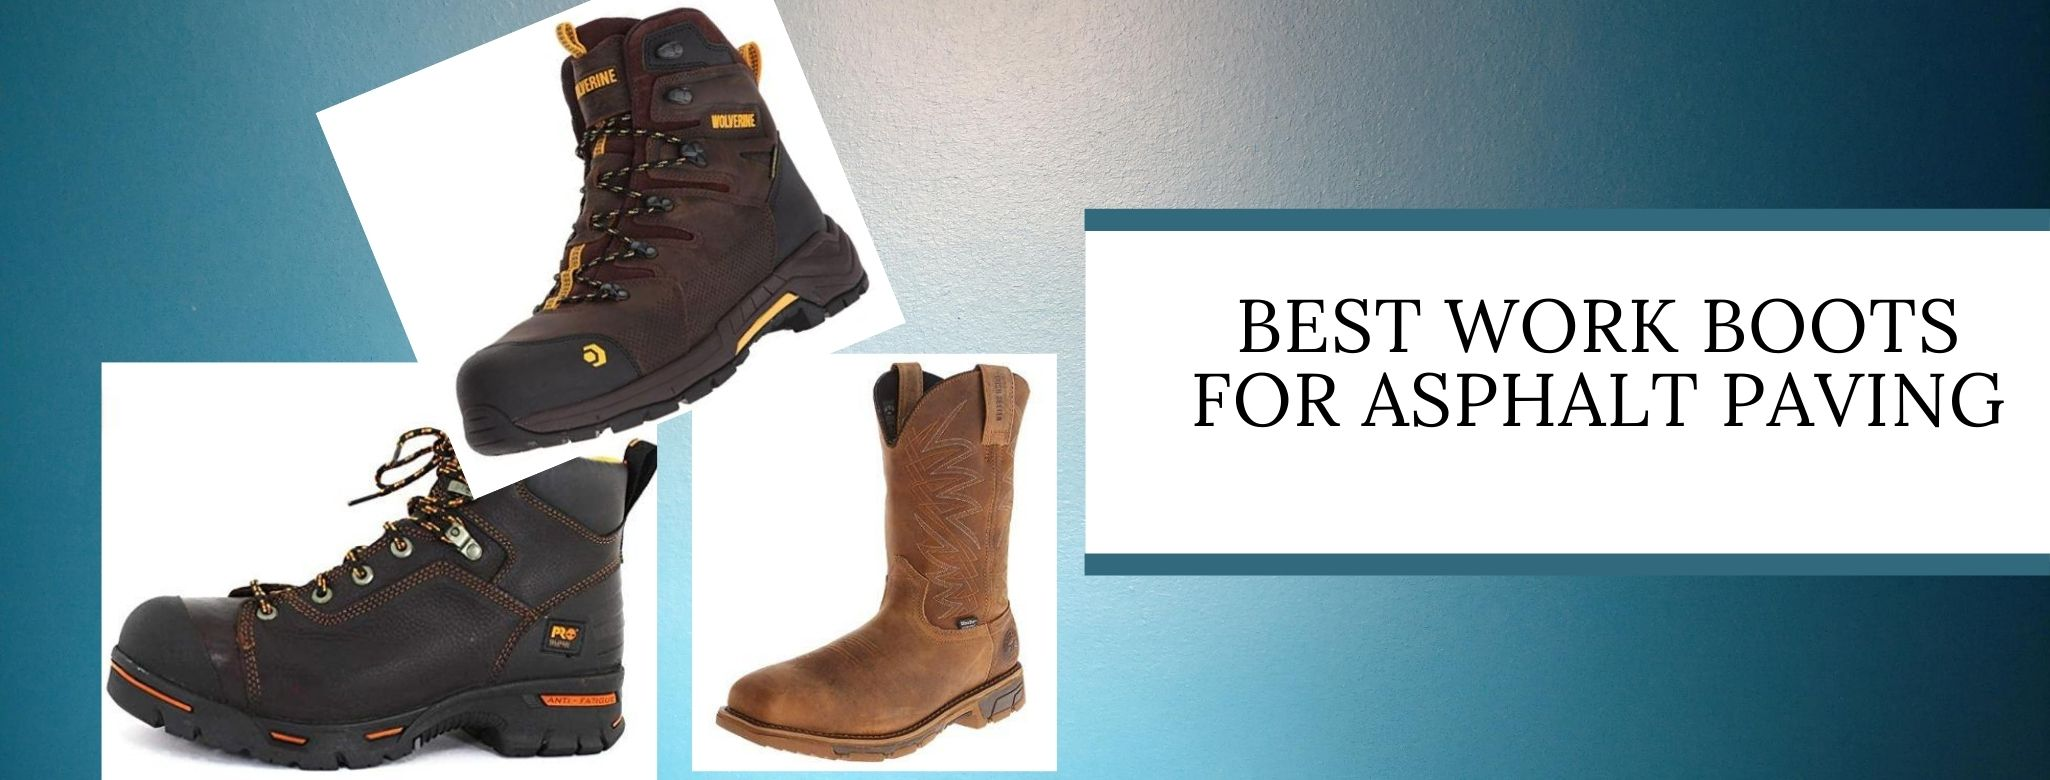 Comfortable boots for heavy work